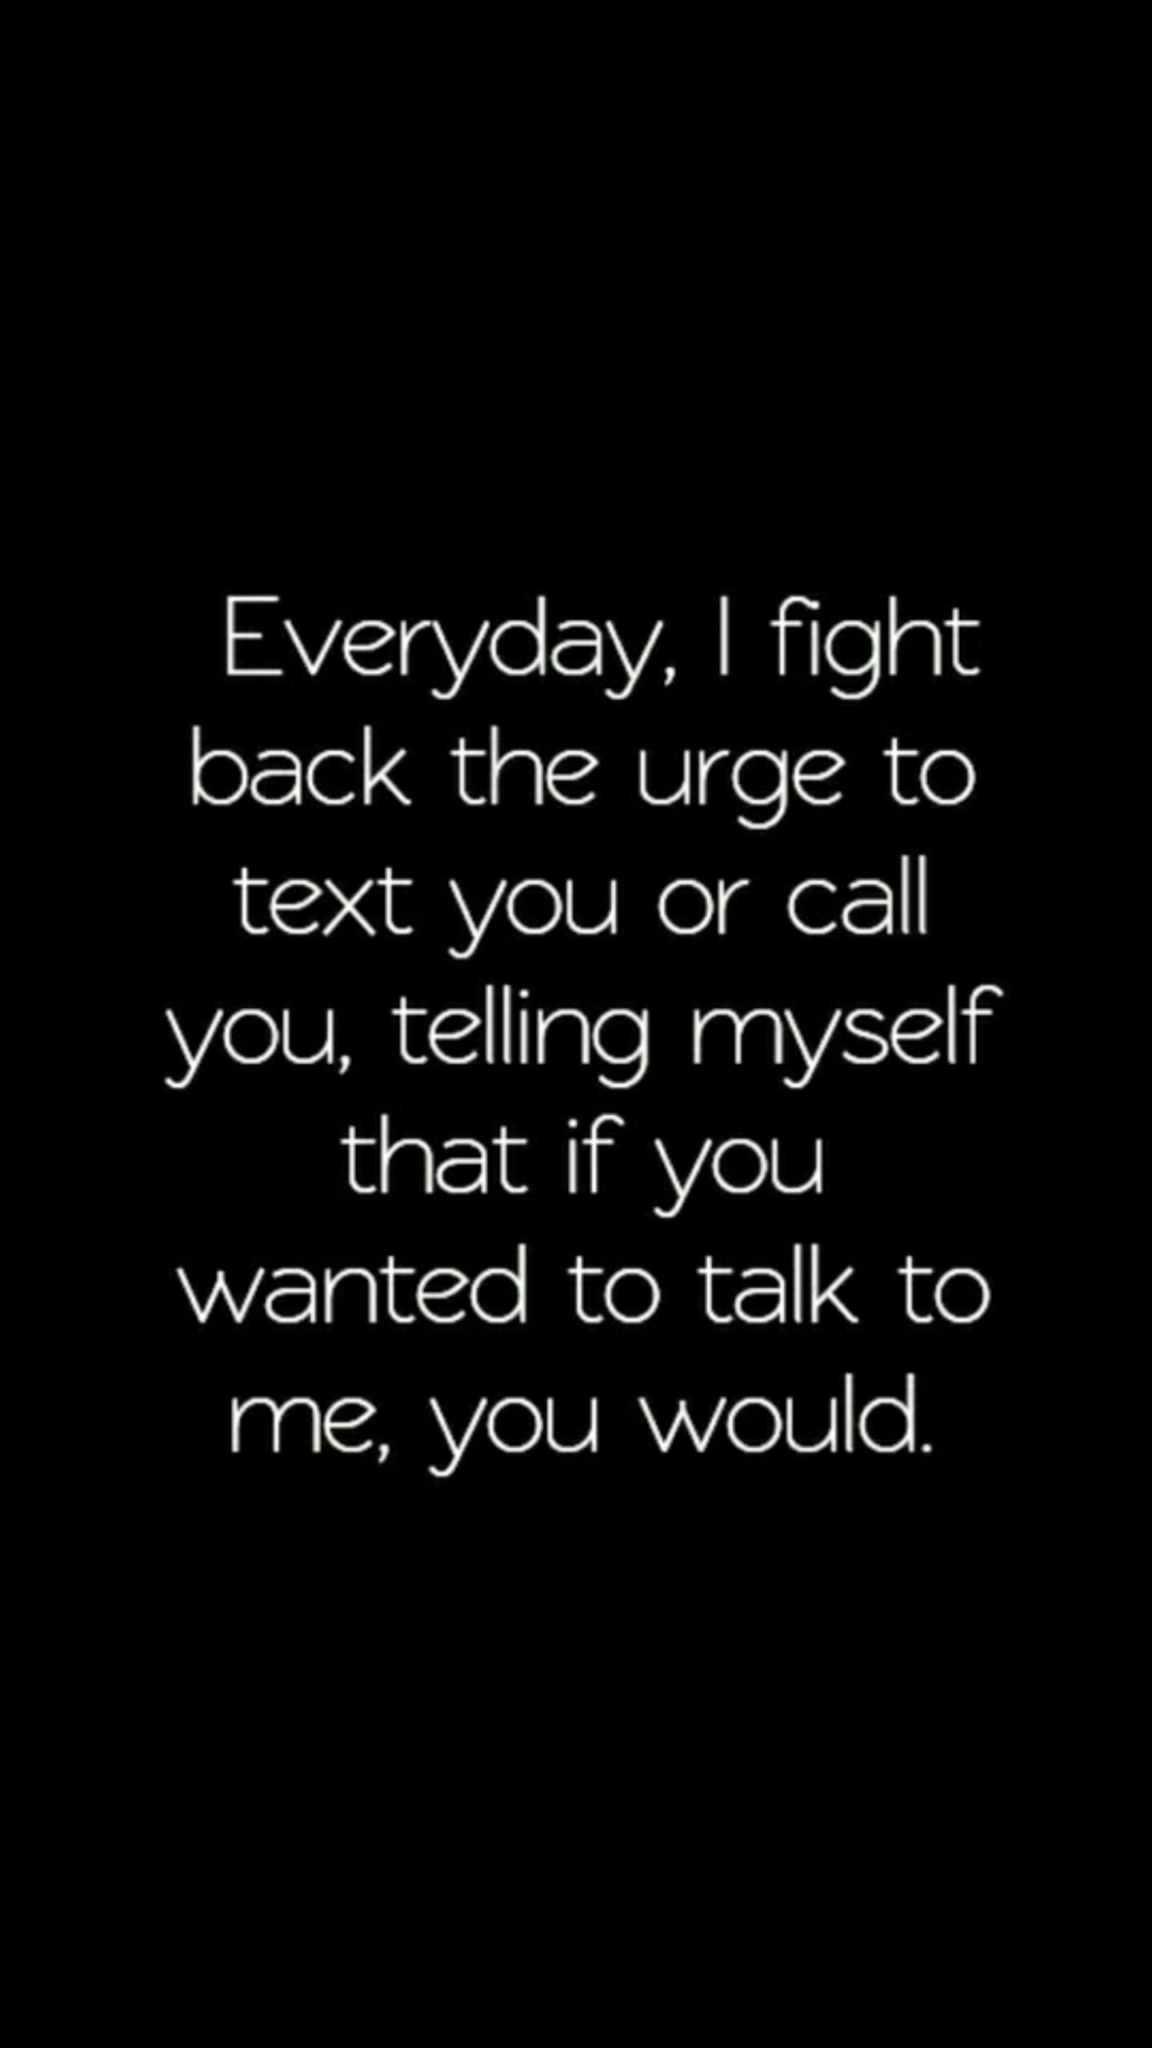 Sad Relationship Quotes Pin by Icrushalot Quote Gallery on Sad Relationship Quote Gallery  Sad Relationship Quotes